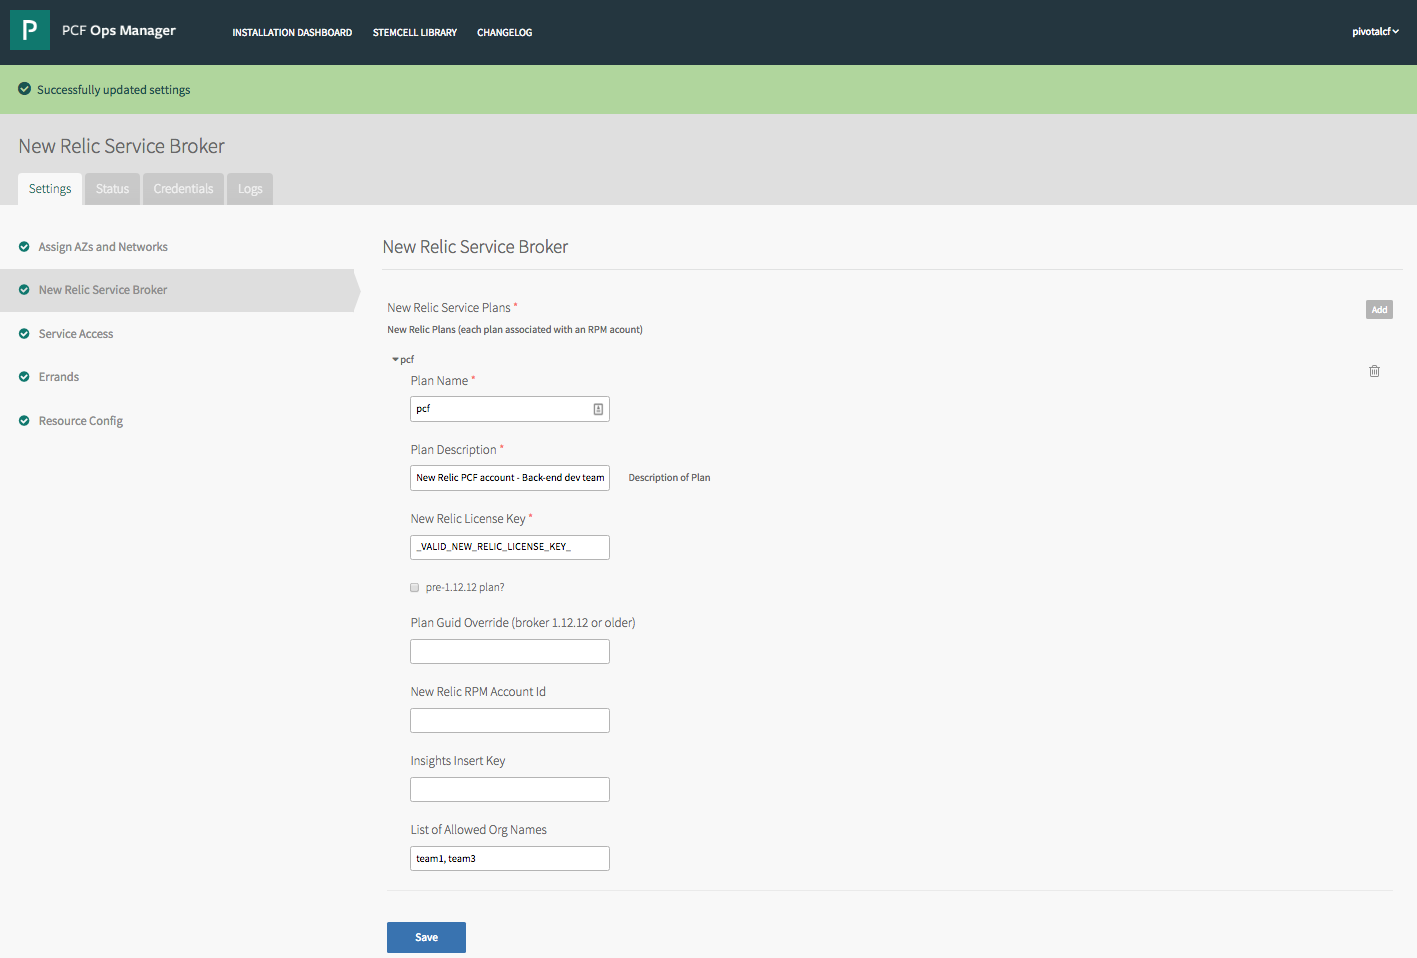 New Relic Service Broker for PCF   Pivotal Partner Docs